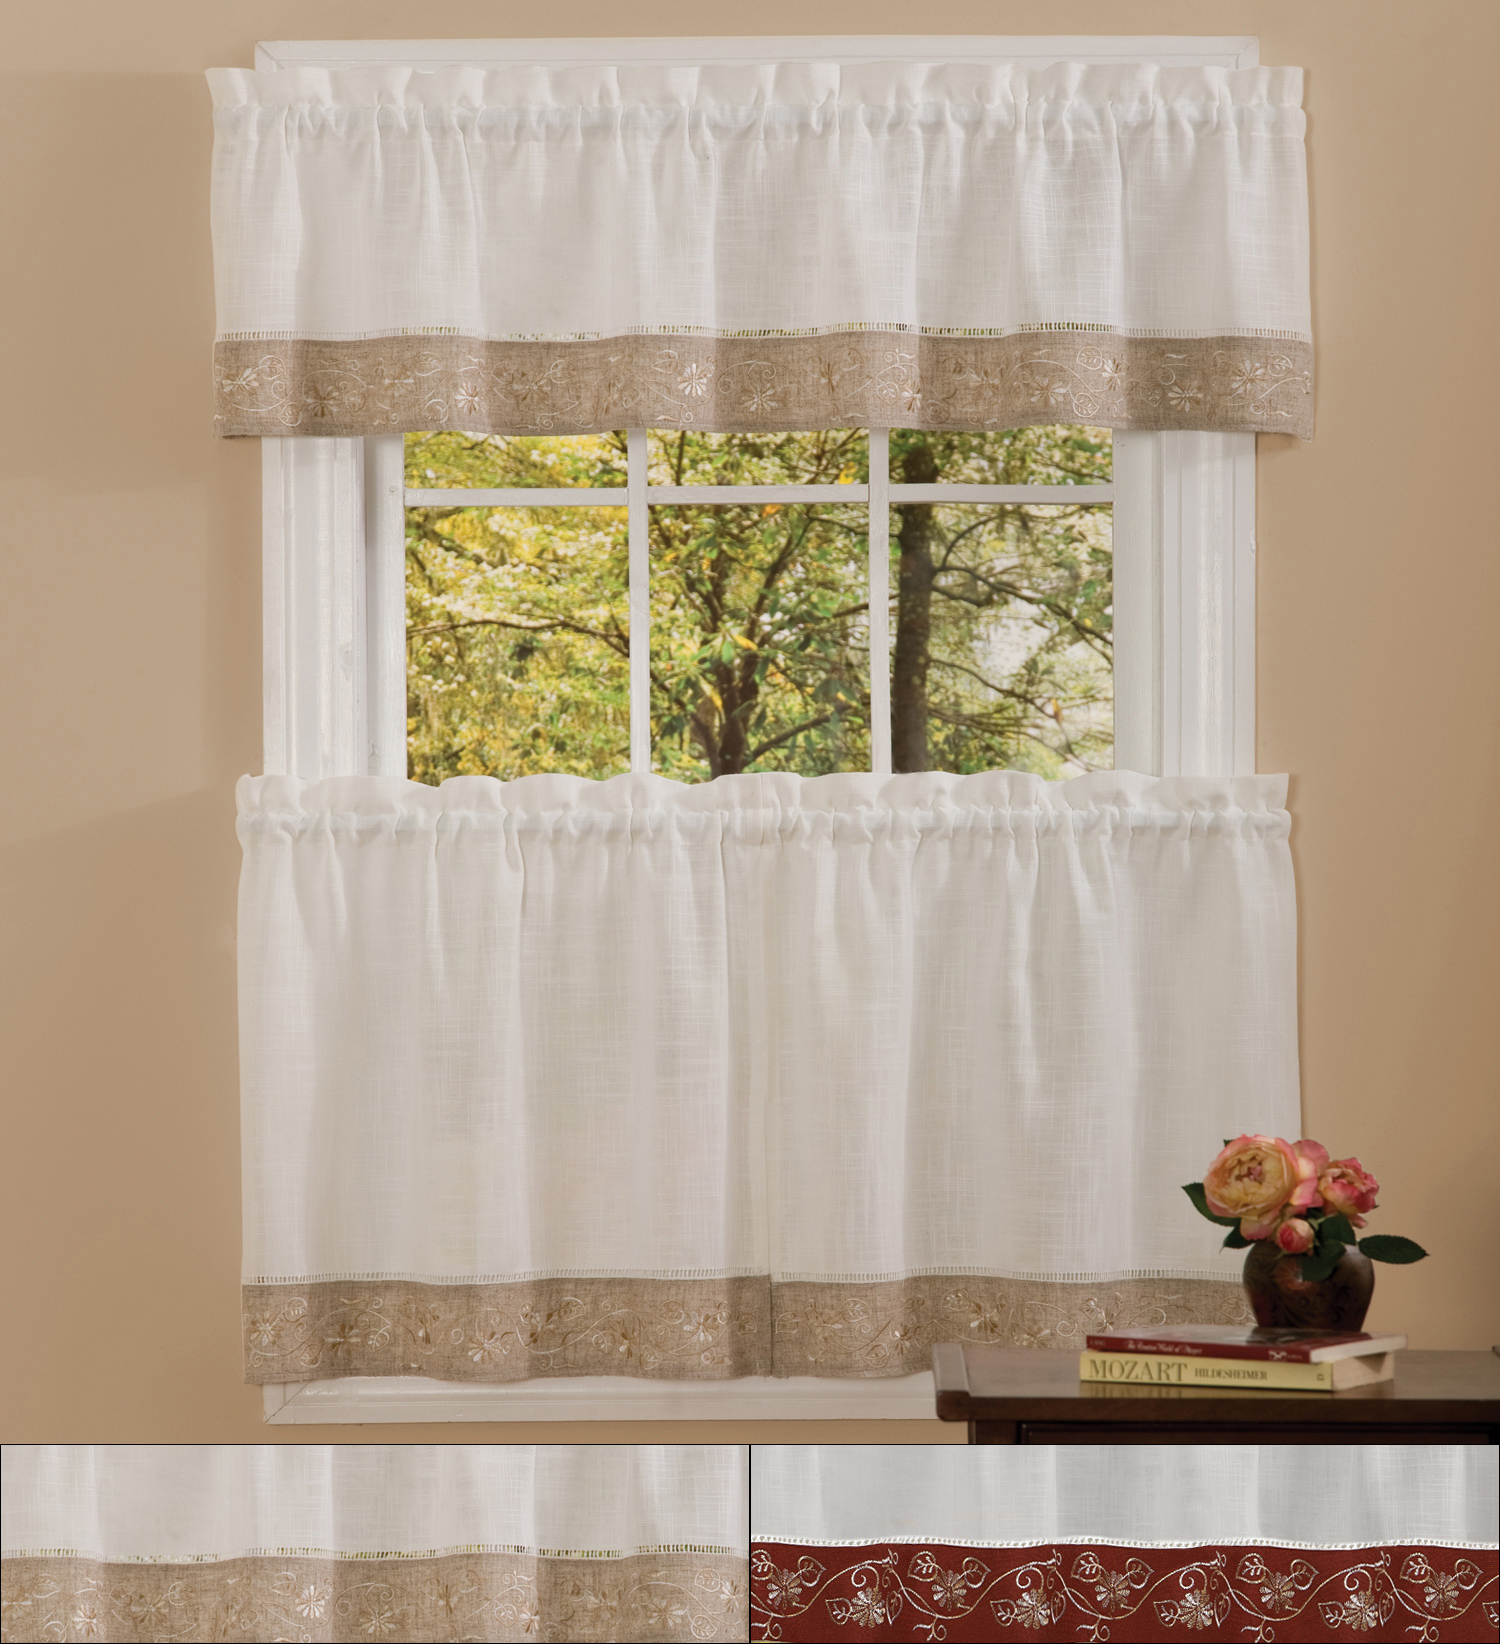 """Details About Oakwood Linen Style Kitchen Window Curtain 24"""" Tiers & Valance Set With Regard To Oakwood Linen Style Decorative Curtain Tier Sets (View 2 of 20)"""